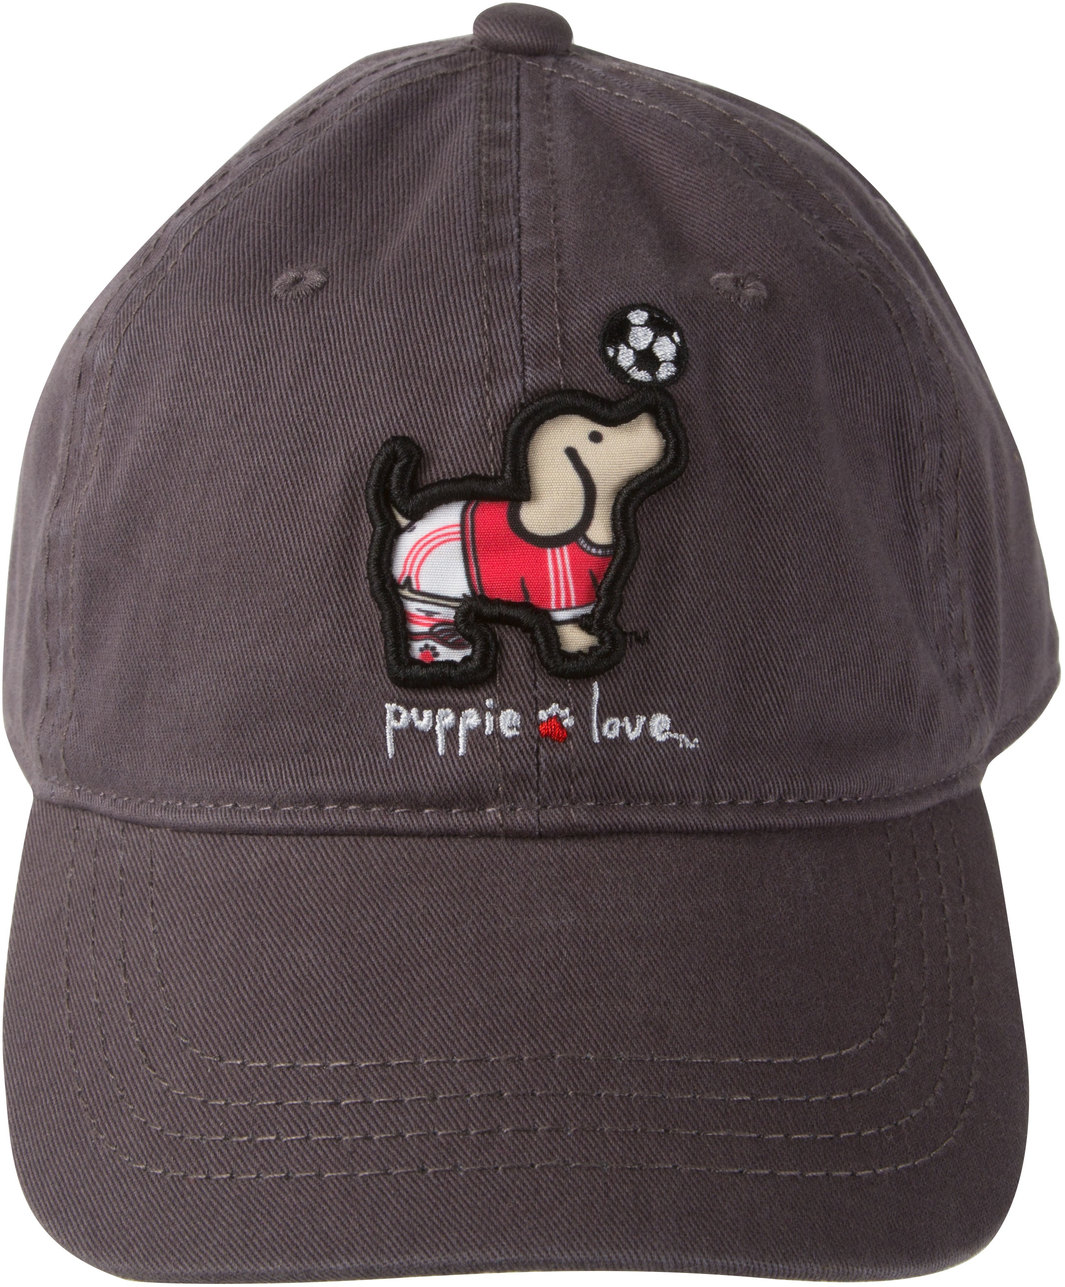 Soccer by Puppie Love - Soccer - Dark Gray Adjustable Hat